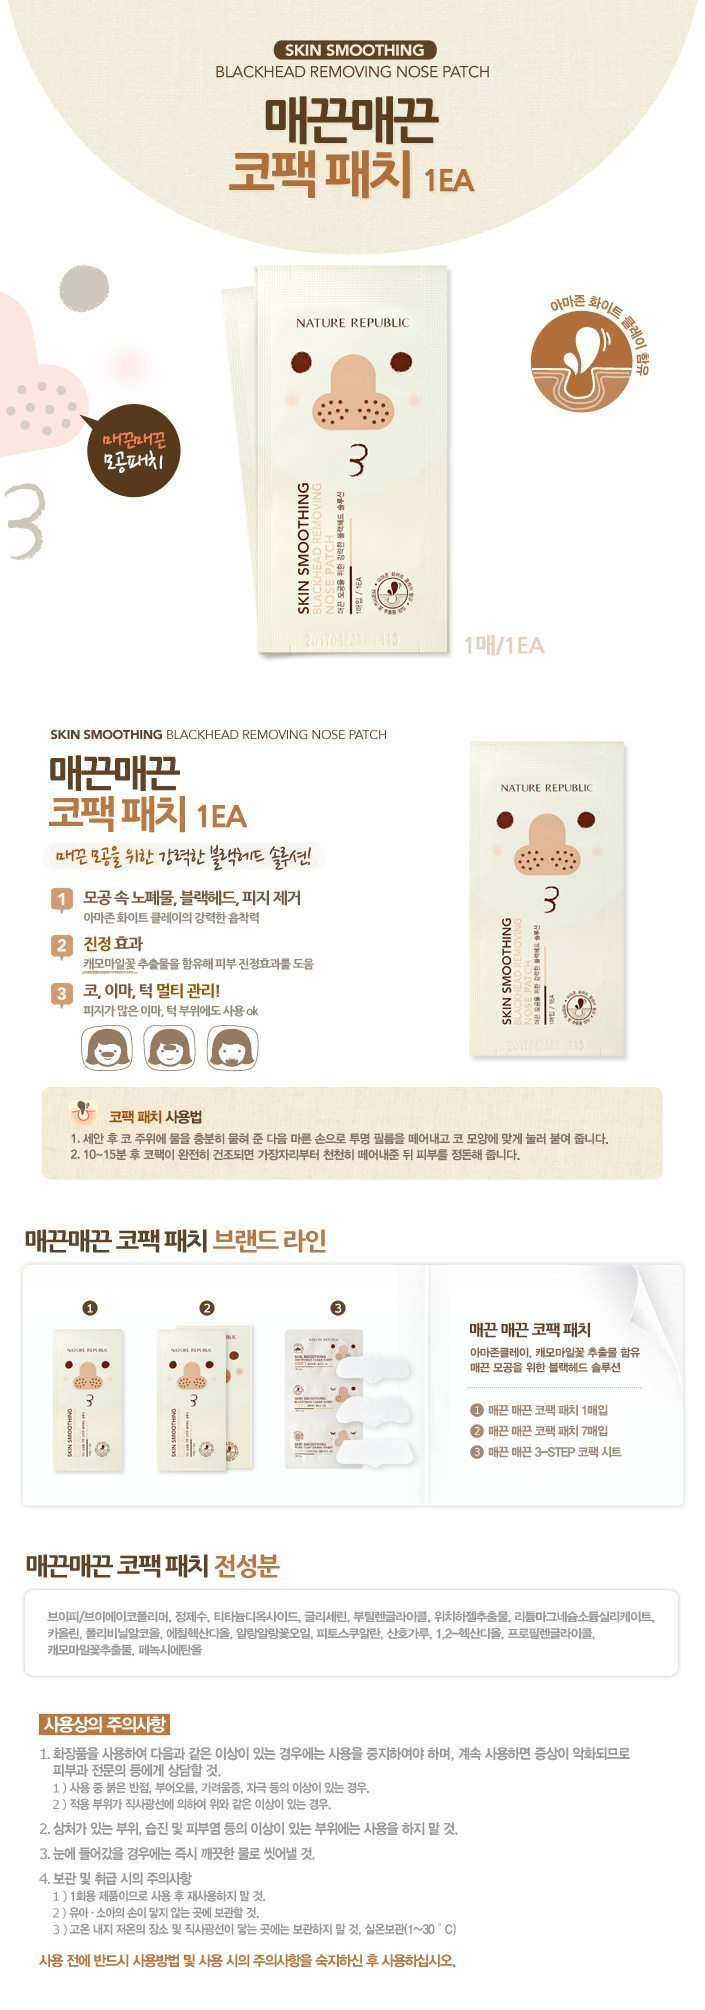 Nature Republic Blackhead Removing Nose Patch